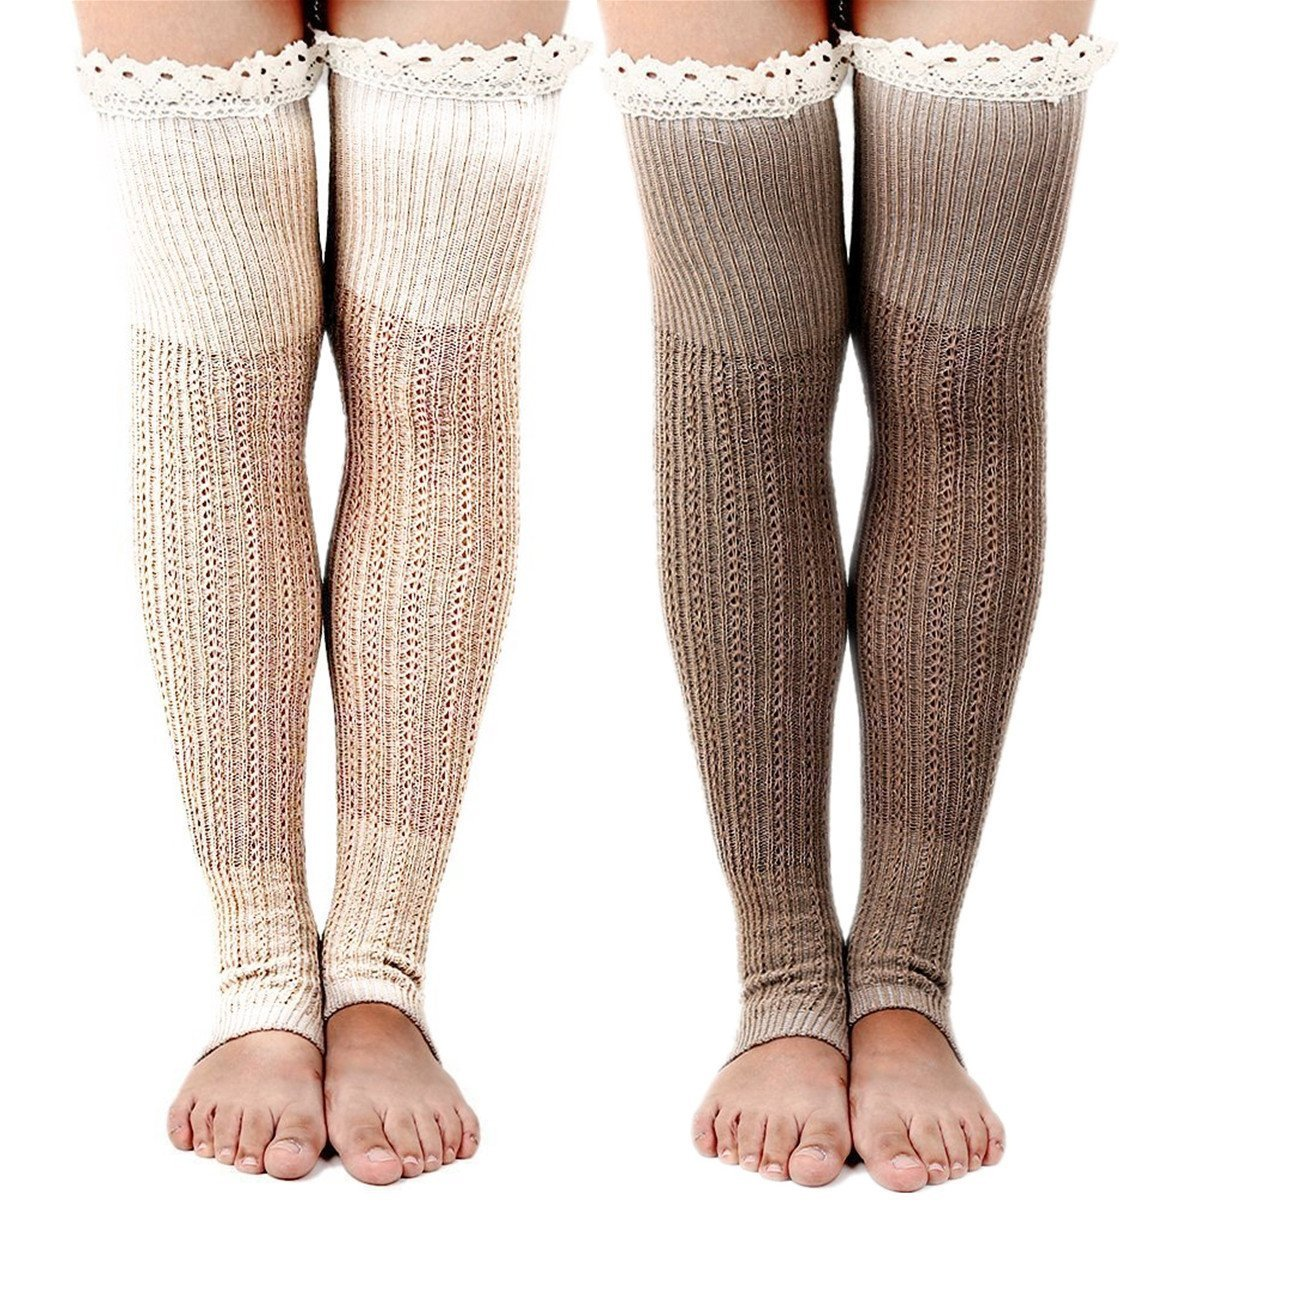 Spring Fever Boot Socks with Lace Trim Cute Leg Warmers(Beige&Khaki)